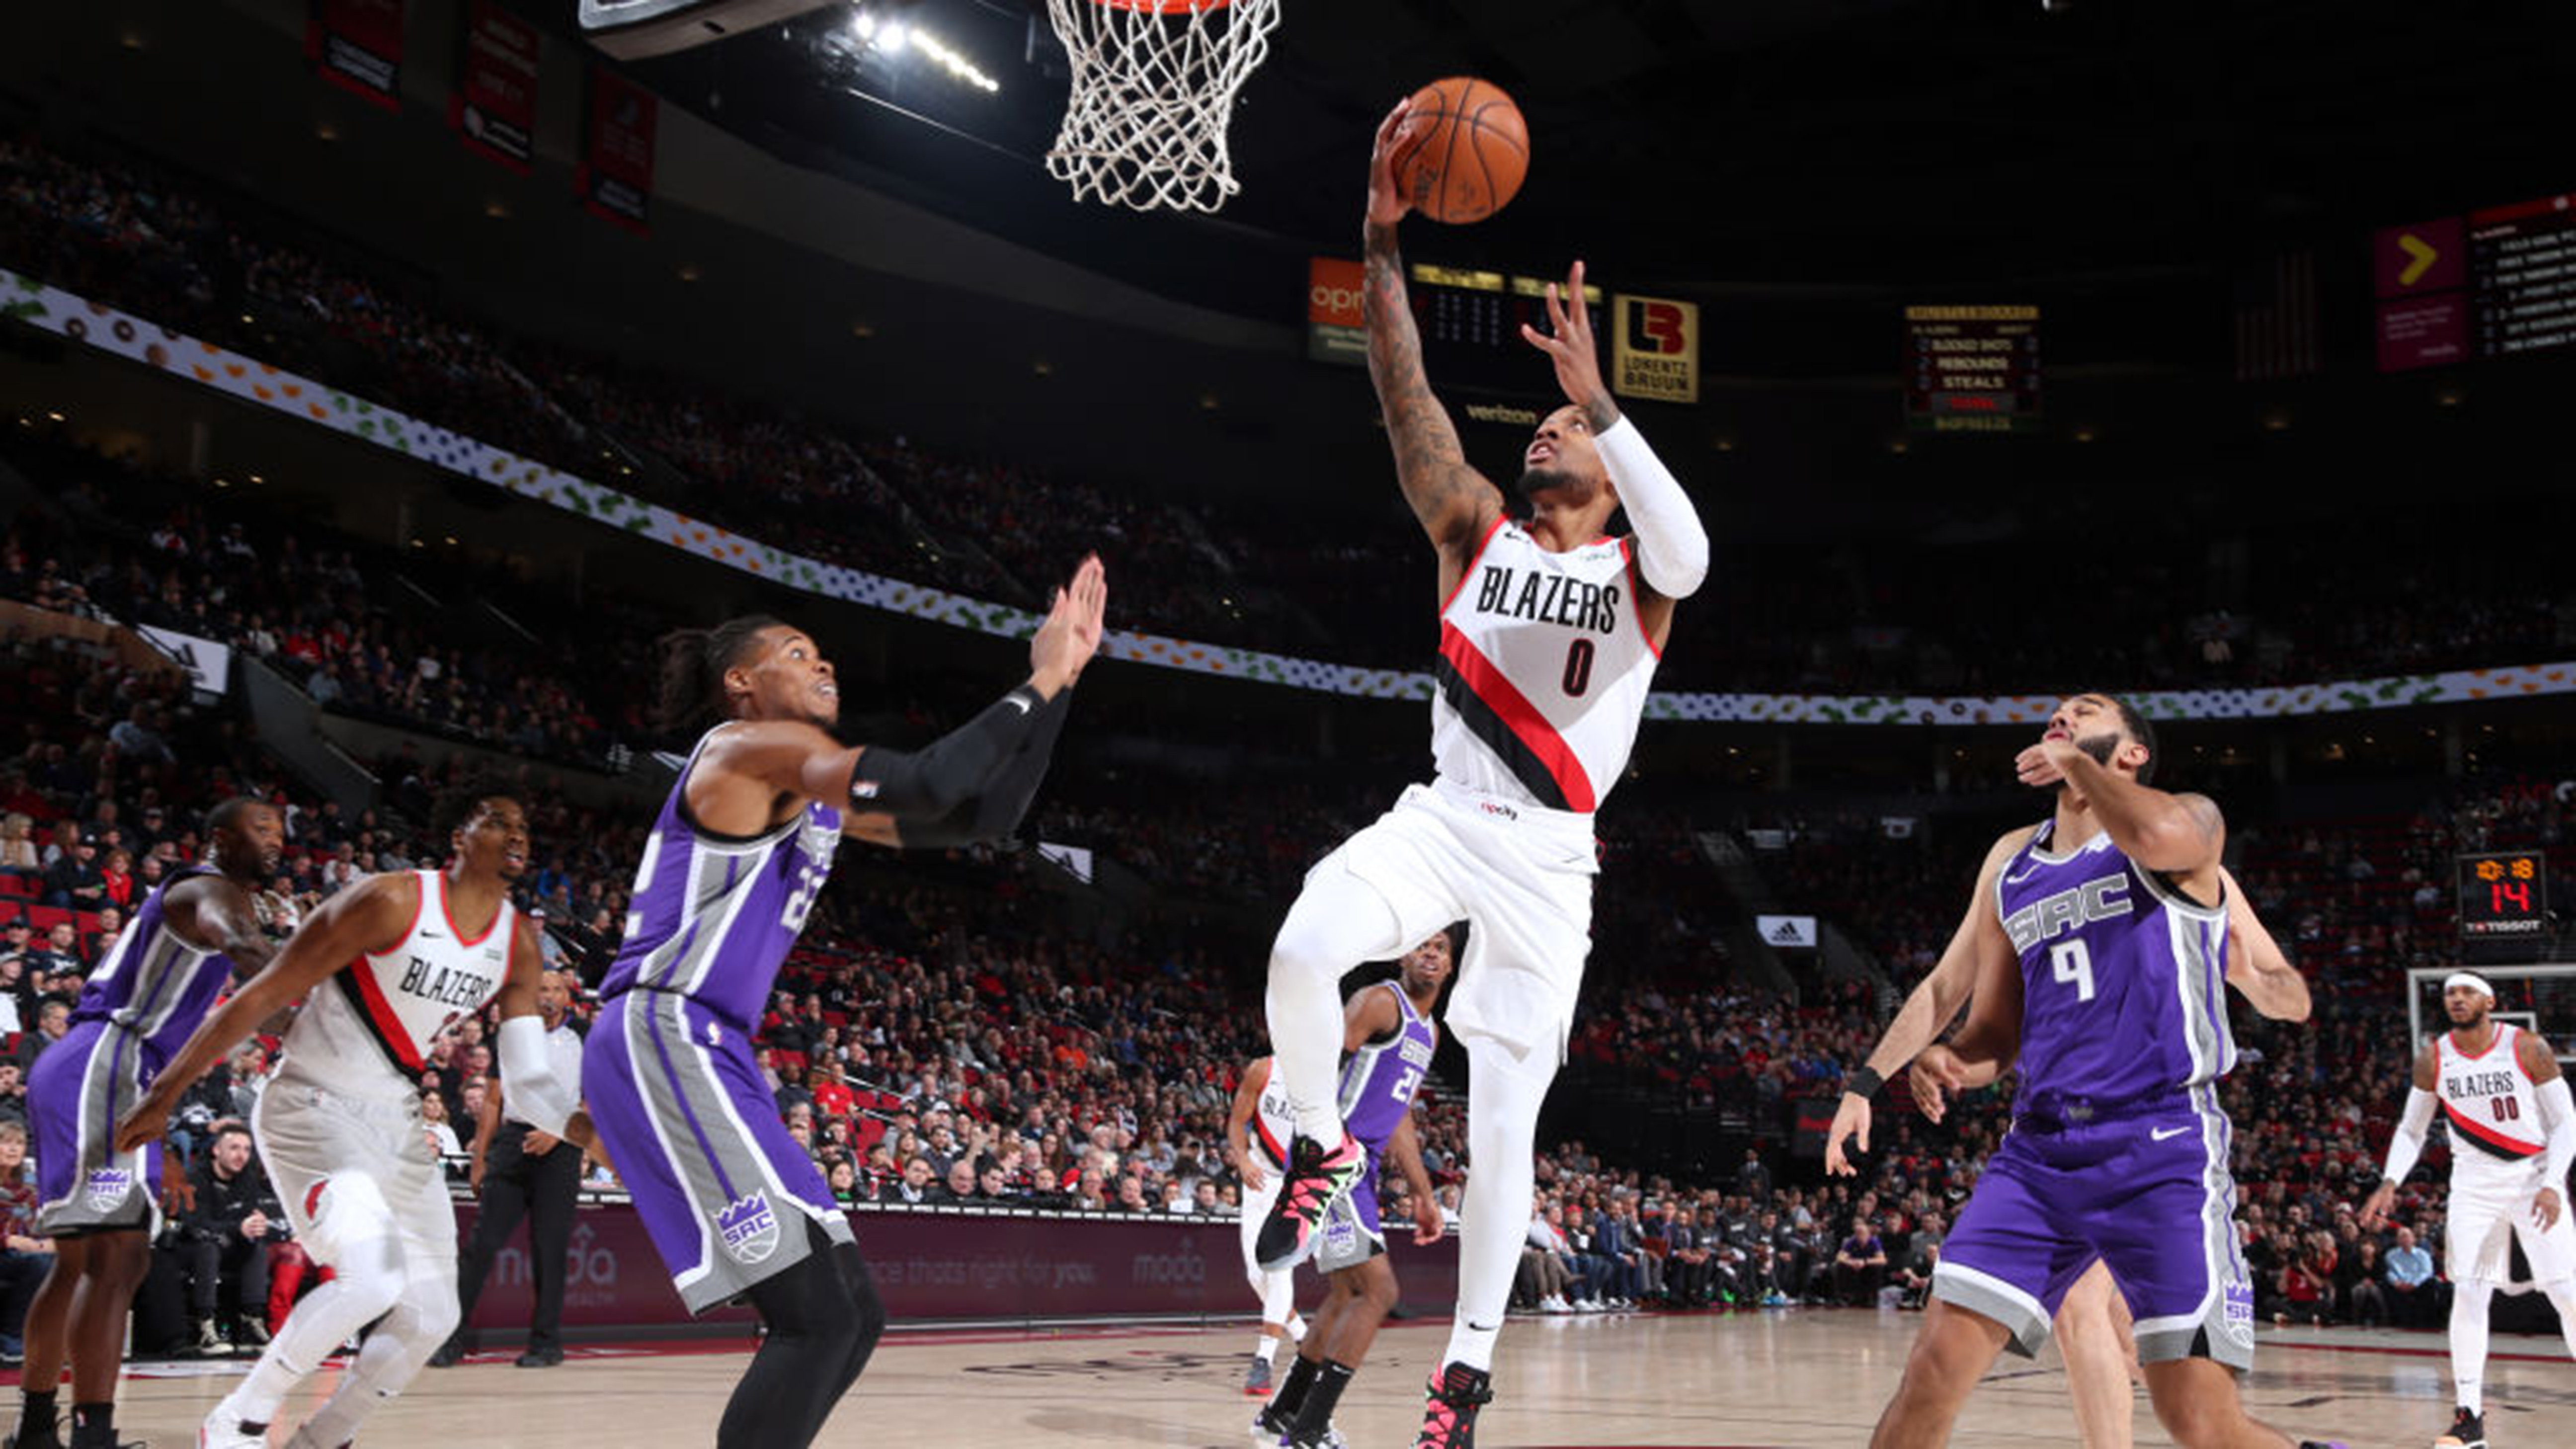 05.12.19. Обзор. GAME RECAP: Trail Blazers 127, Kings 116